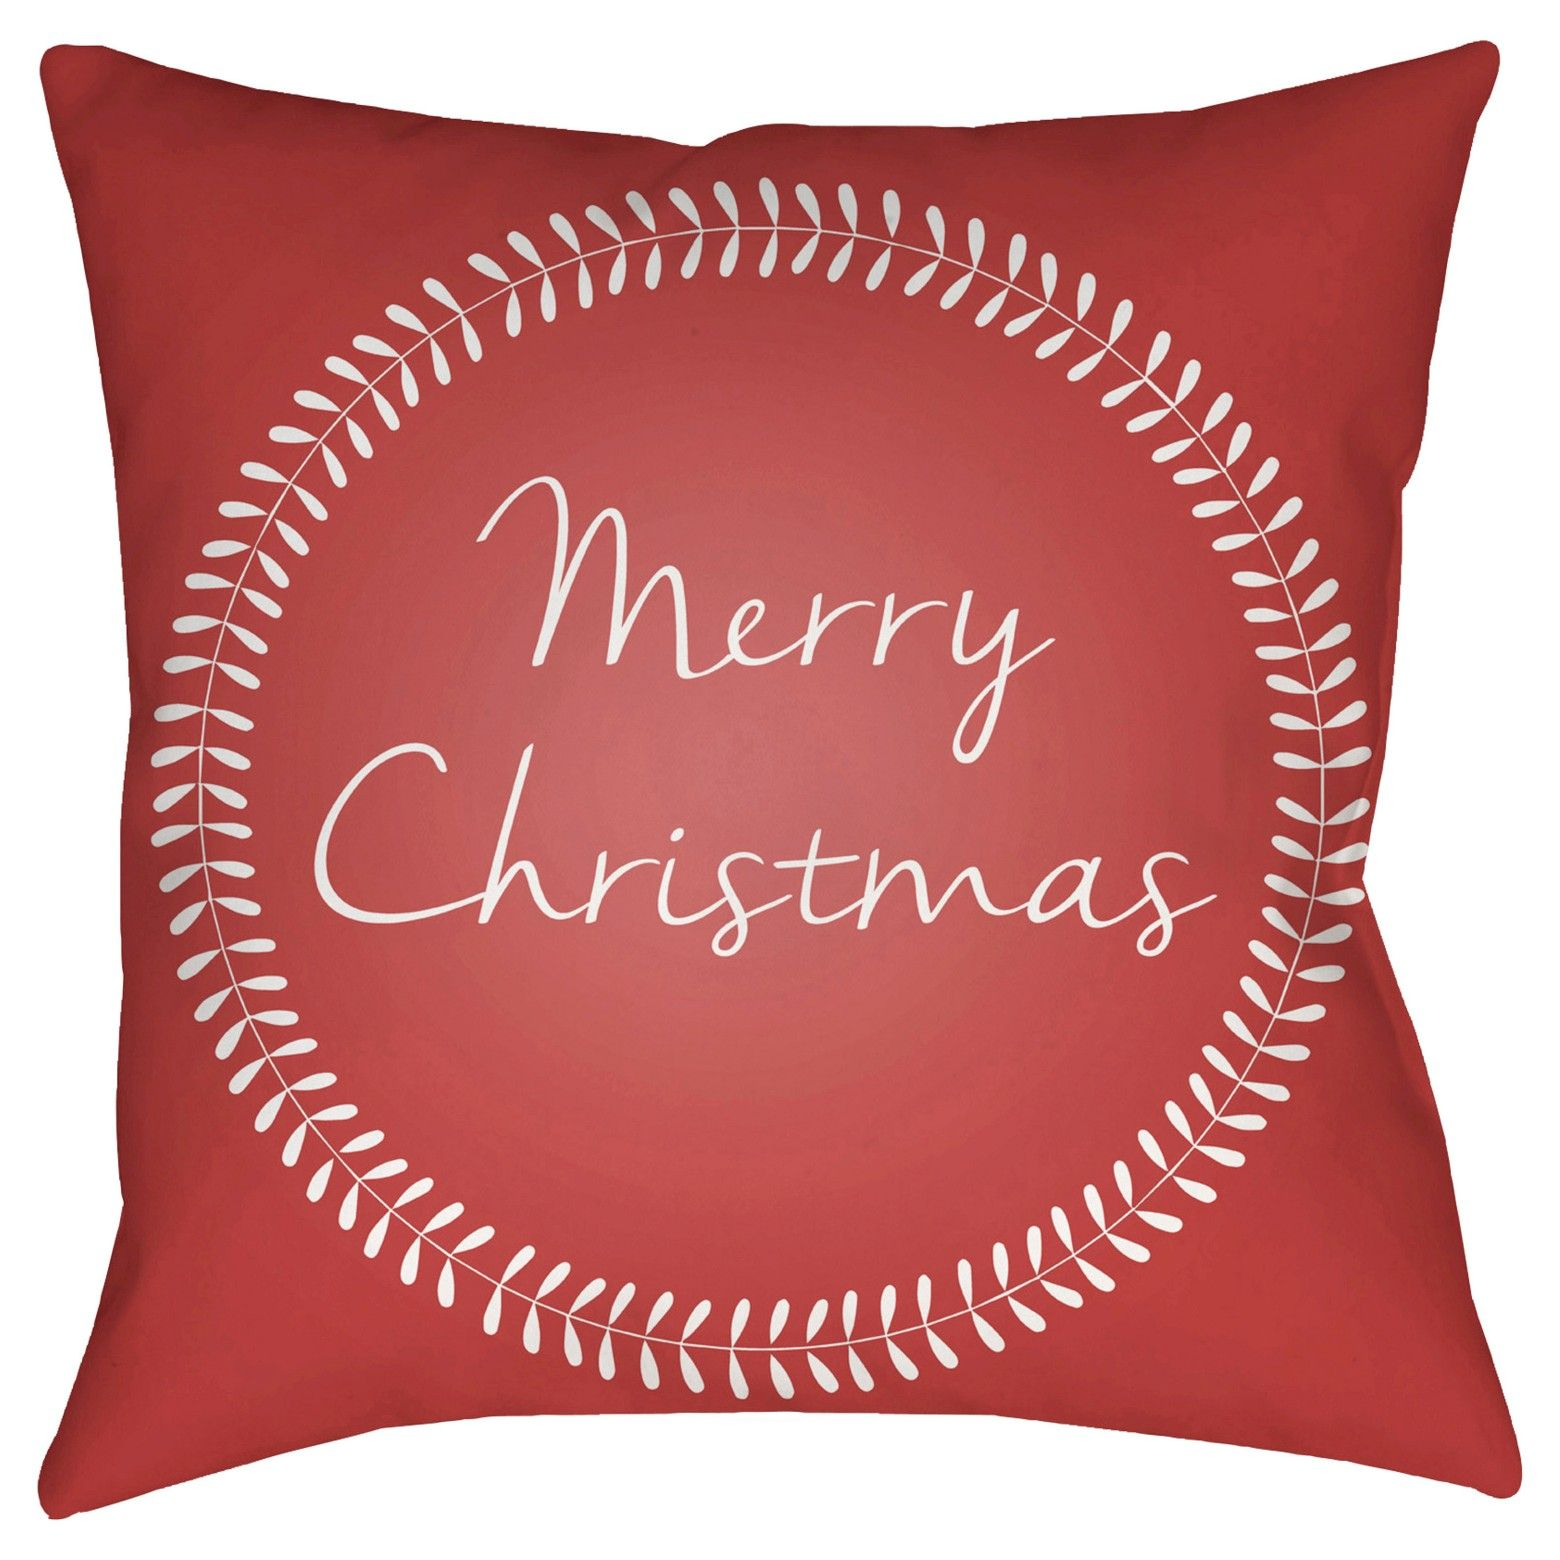 Bring some cheer to your home and company with our great